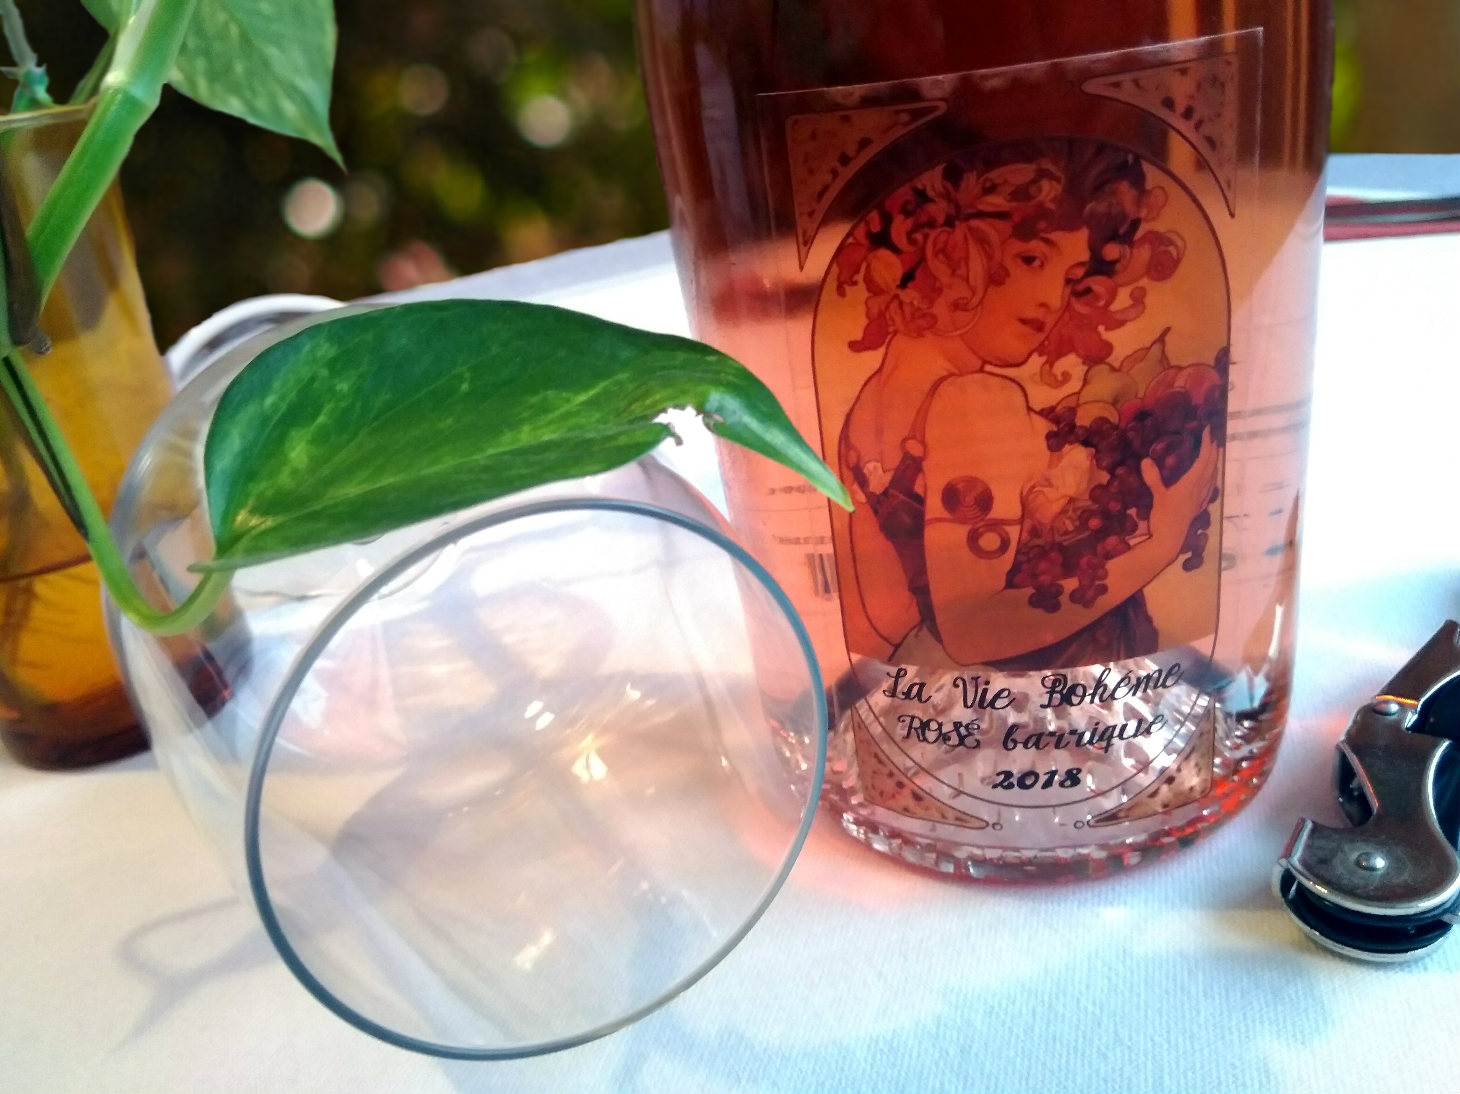 La vie Bohéme Rose Barrique 2018 -Dos Alamos Winery